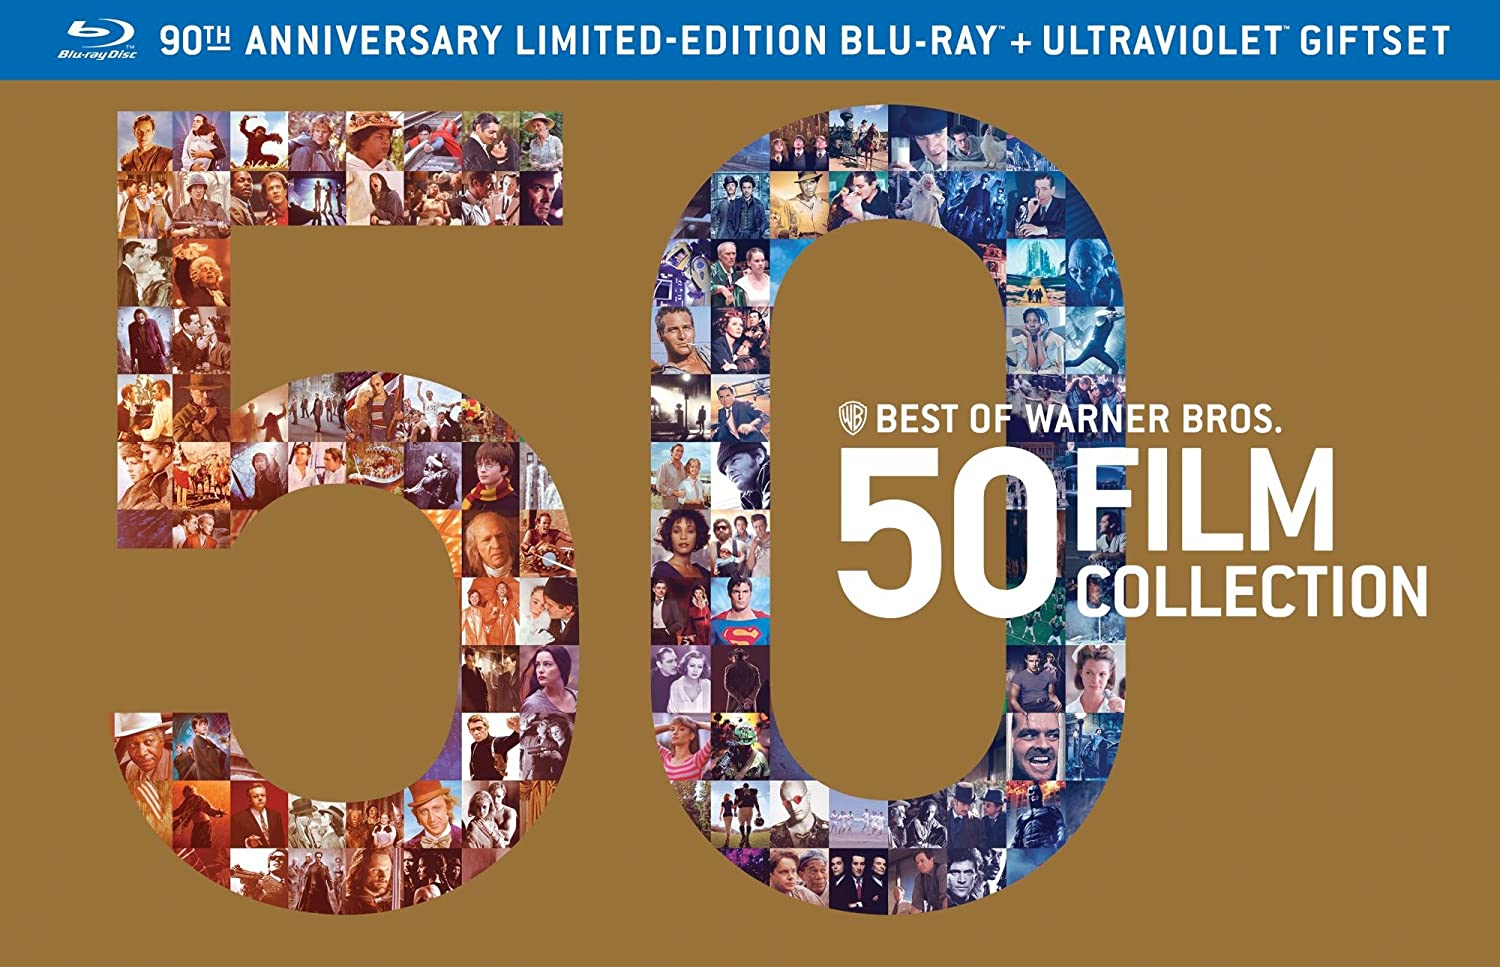 Best of Warner Bros 50 Film Collection (+UltraViolet Digital Copy) [Blu-ray] $179.99